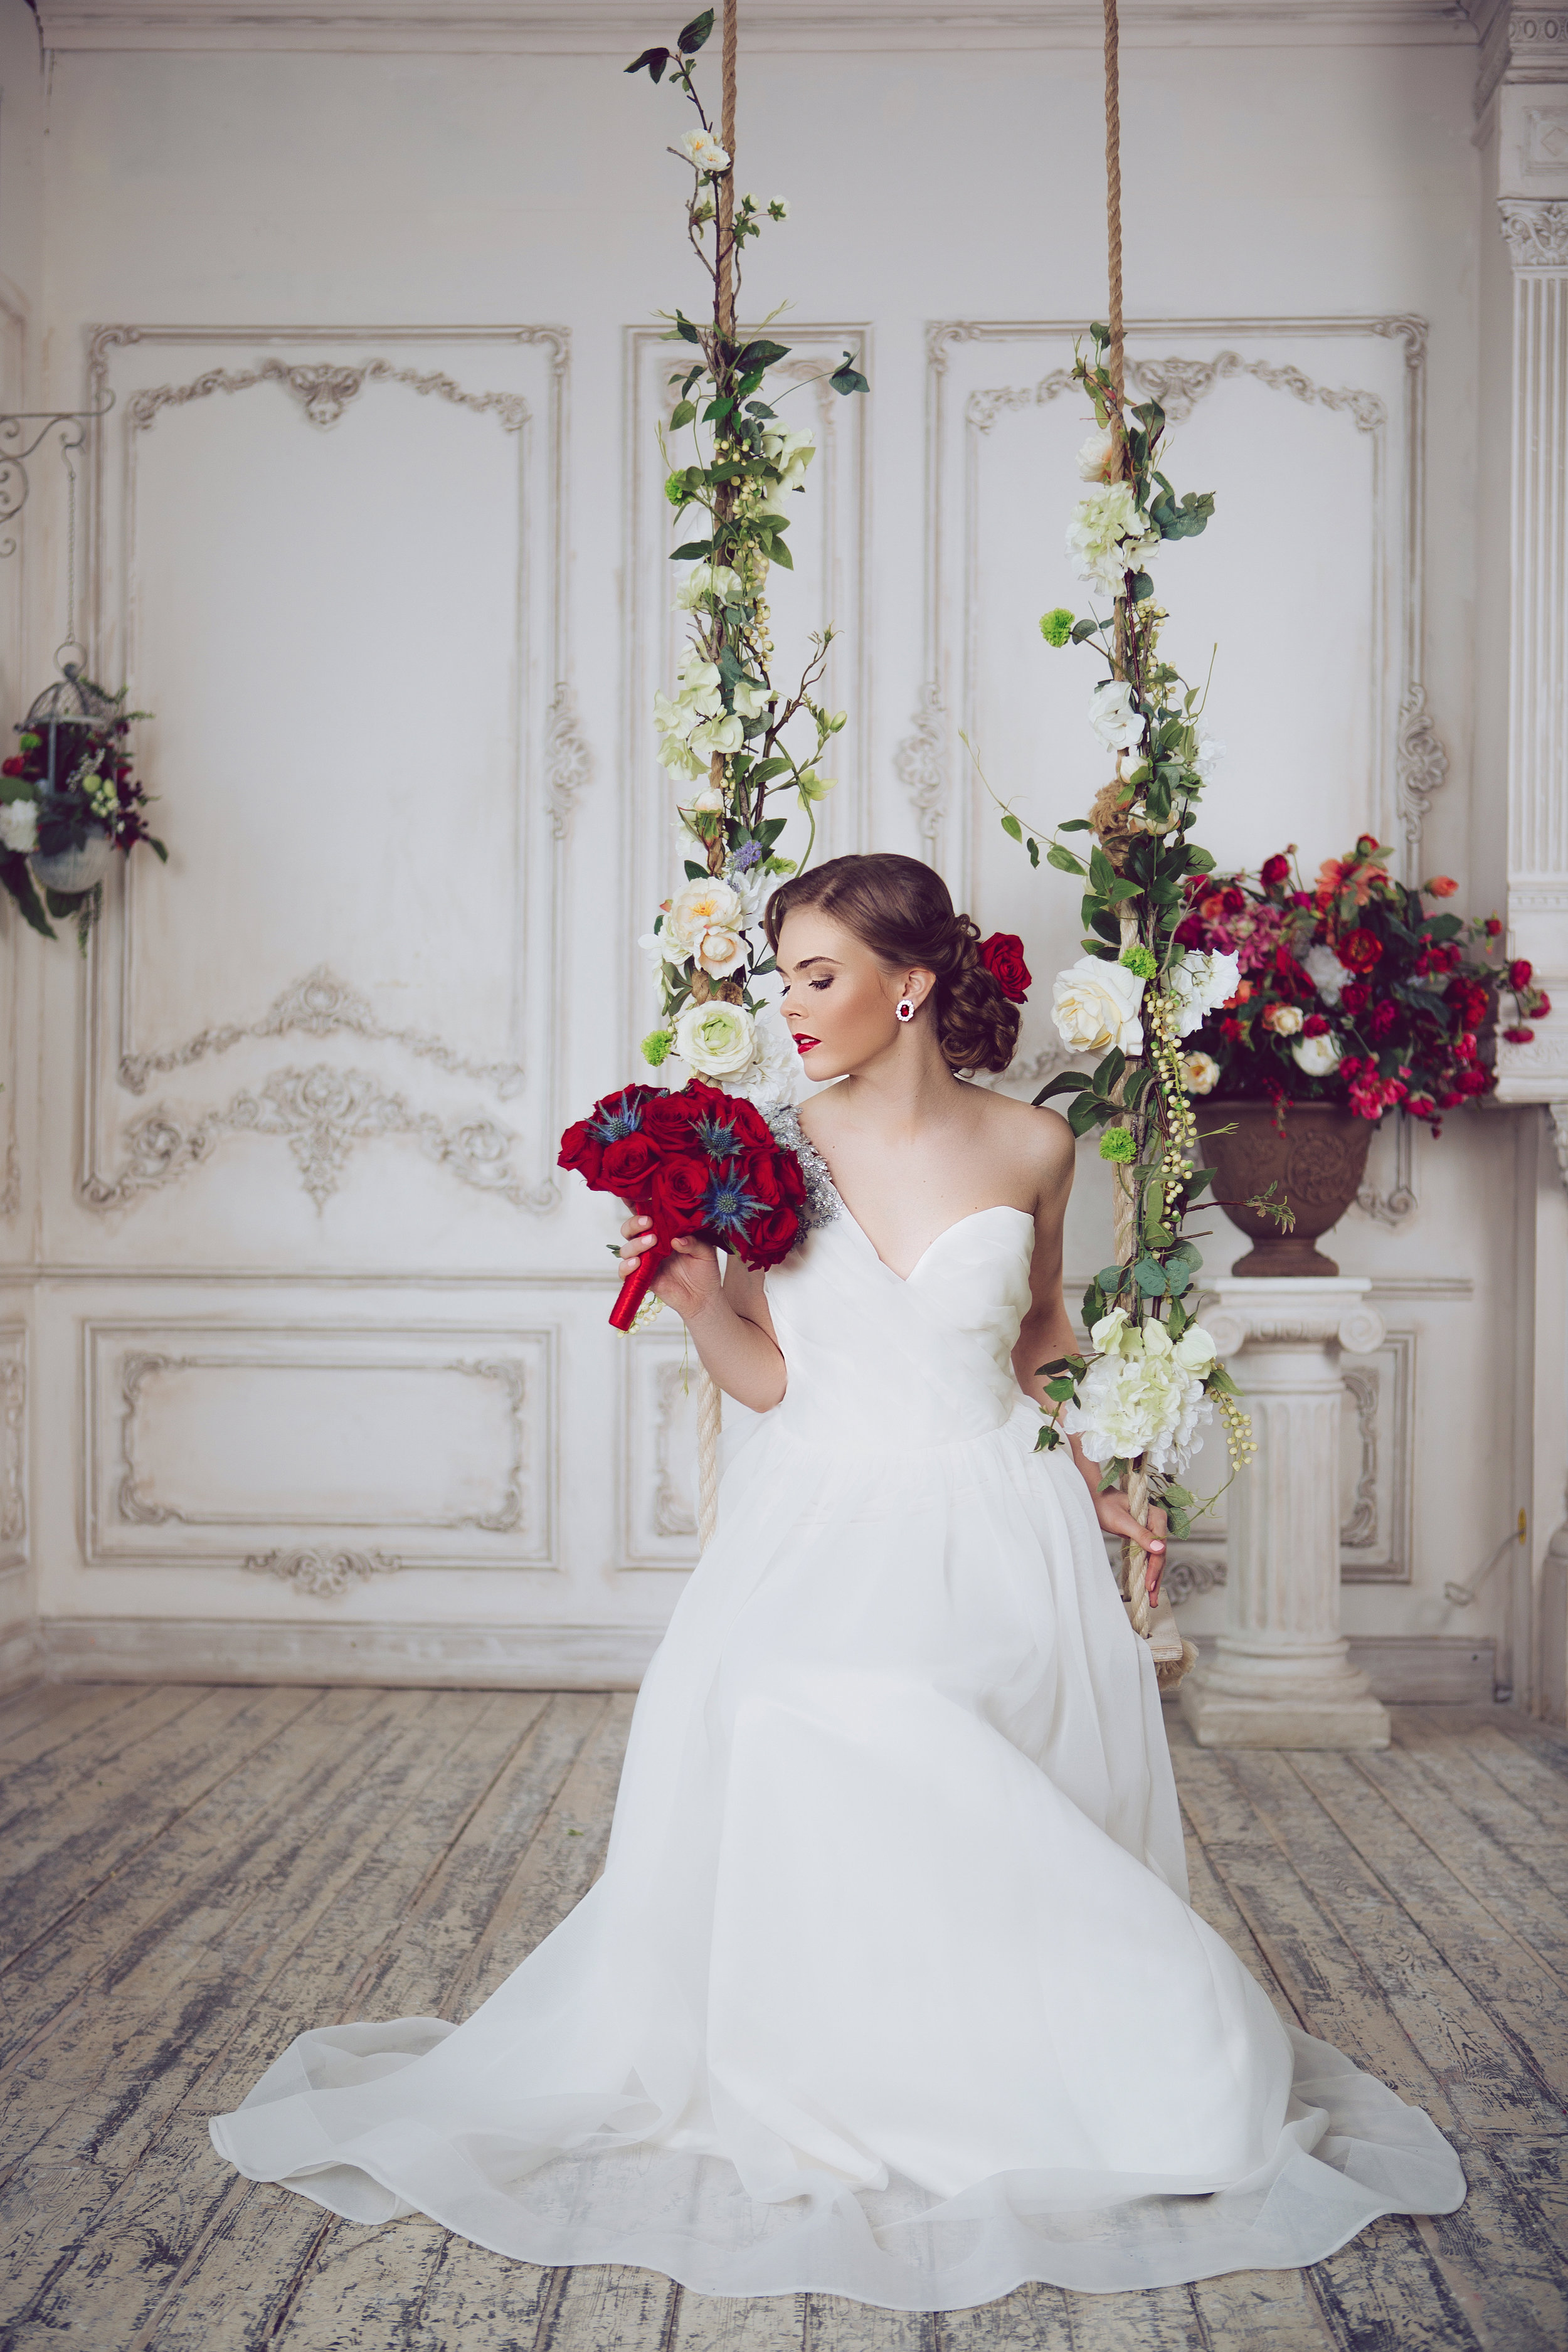 Portrait of Young Beautiful Attractive Bride with Flowers. White Dress and Wedding Decorations. Vintage Toning